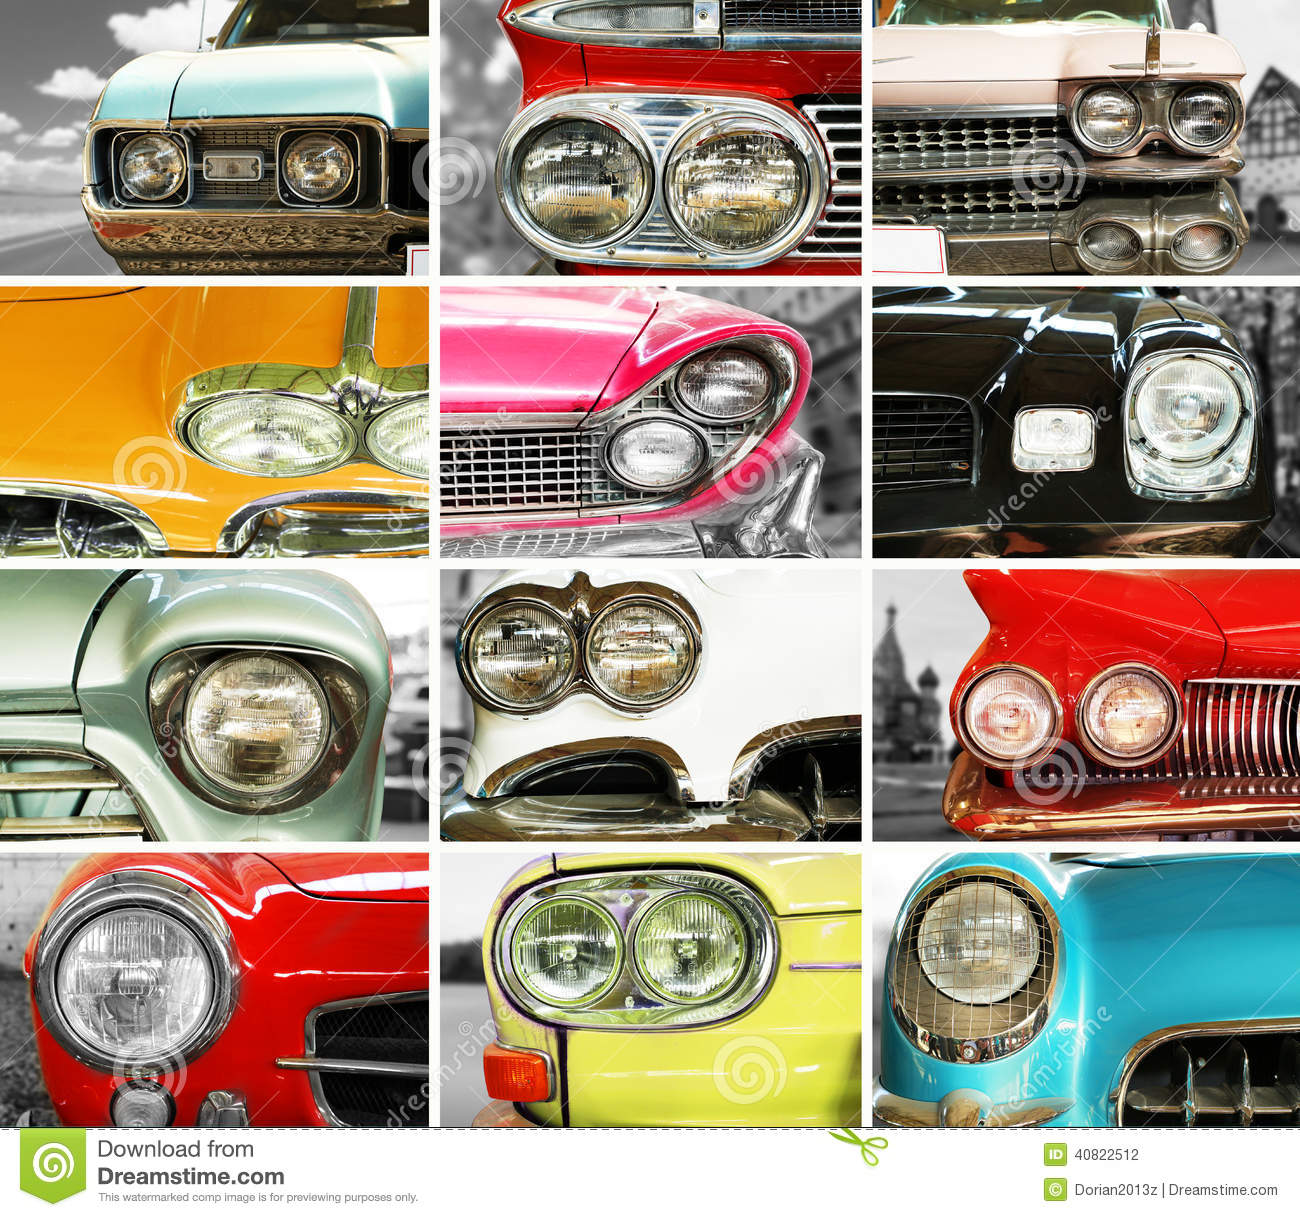 Classic cars, retro automobile collage